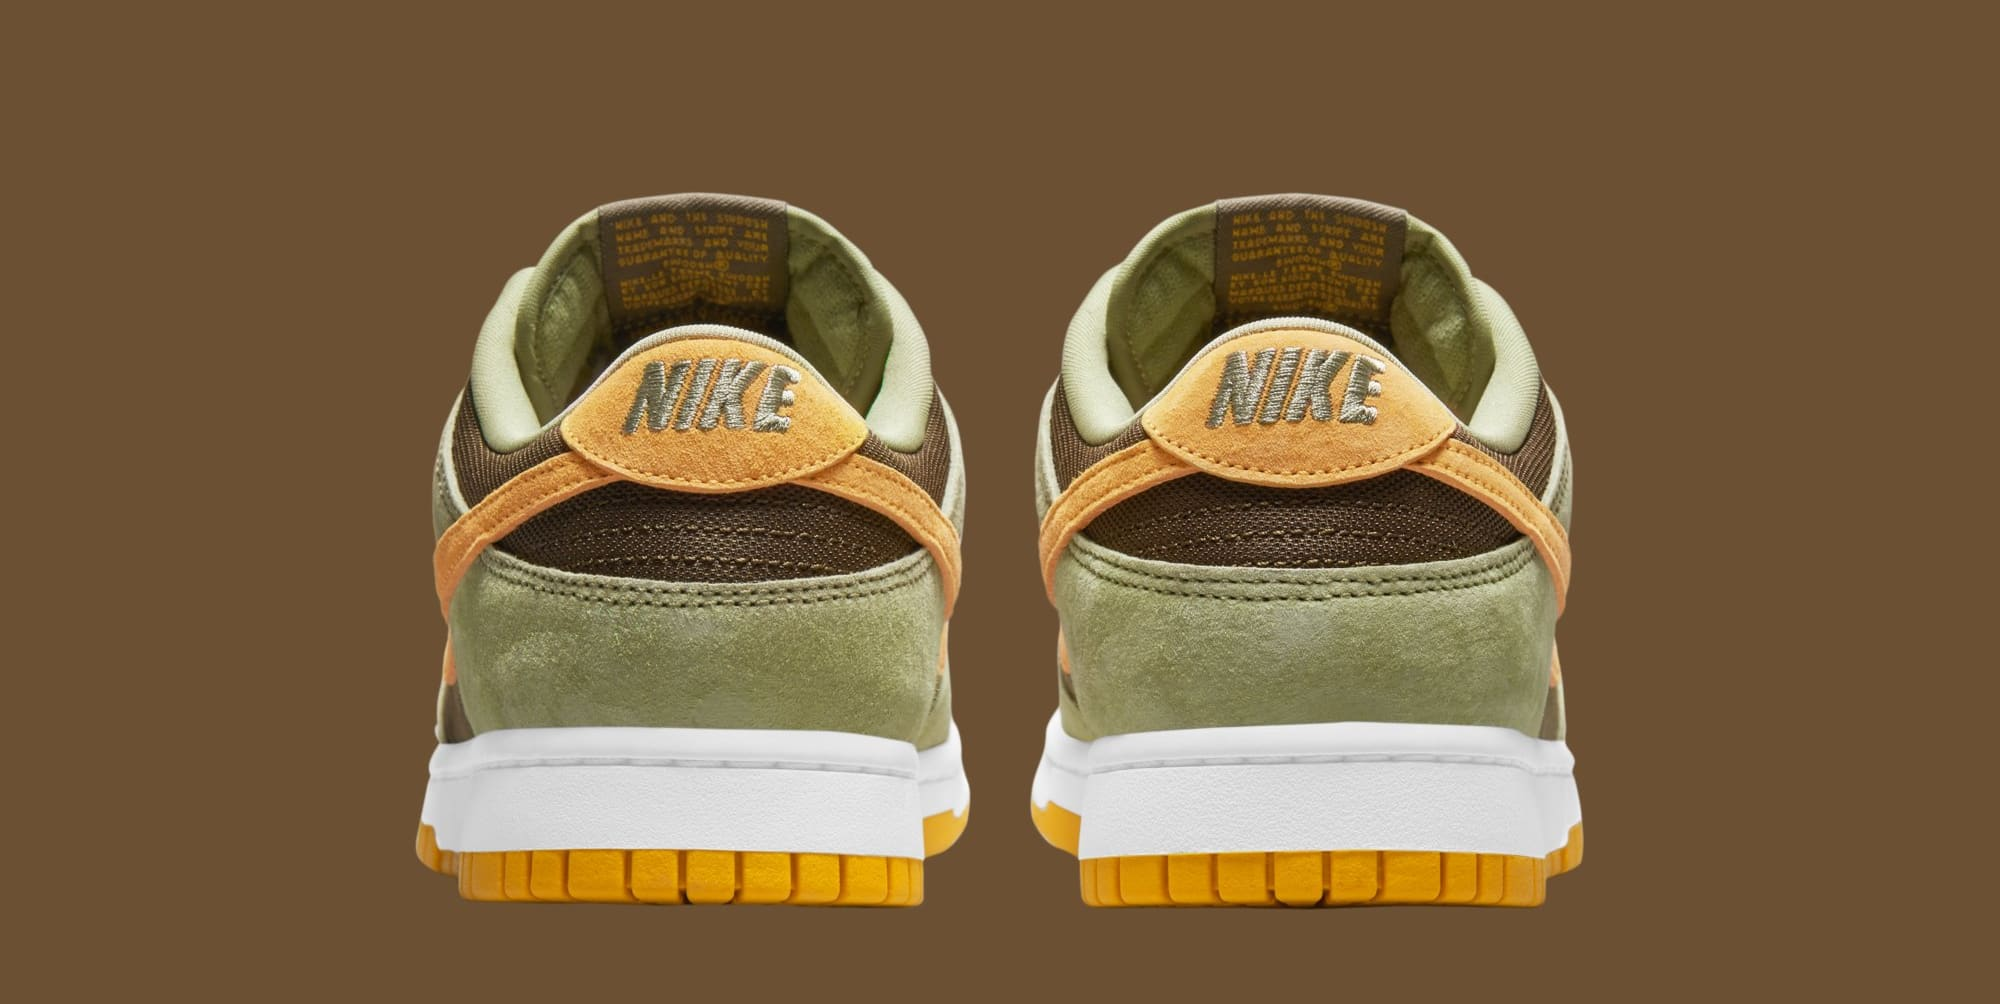 Nike Dunk Low 'Dusty Olive' DH5360-300 (Heel)